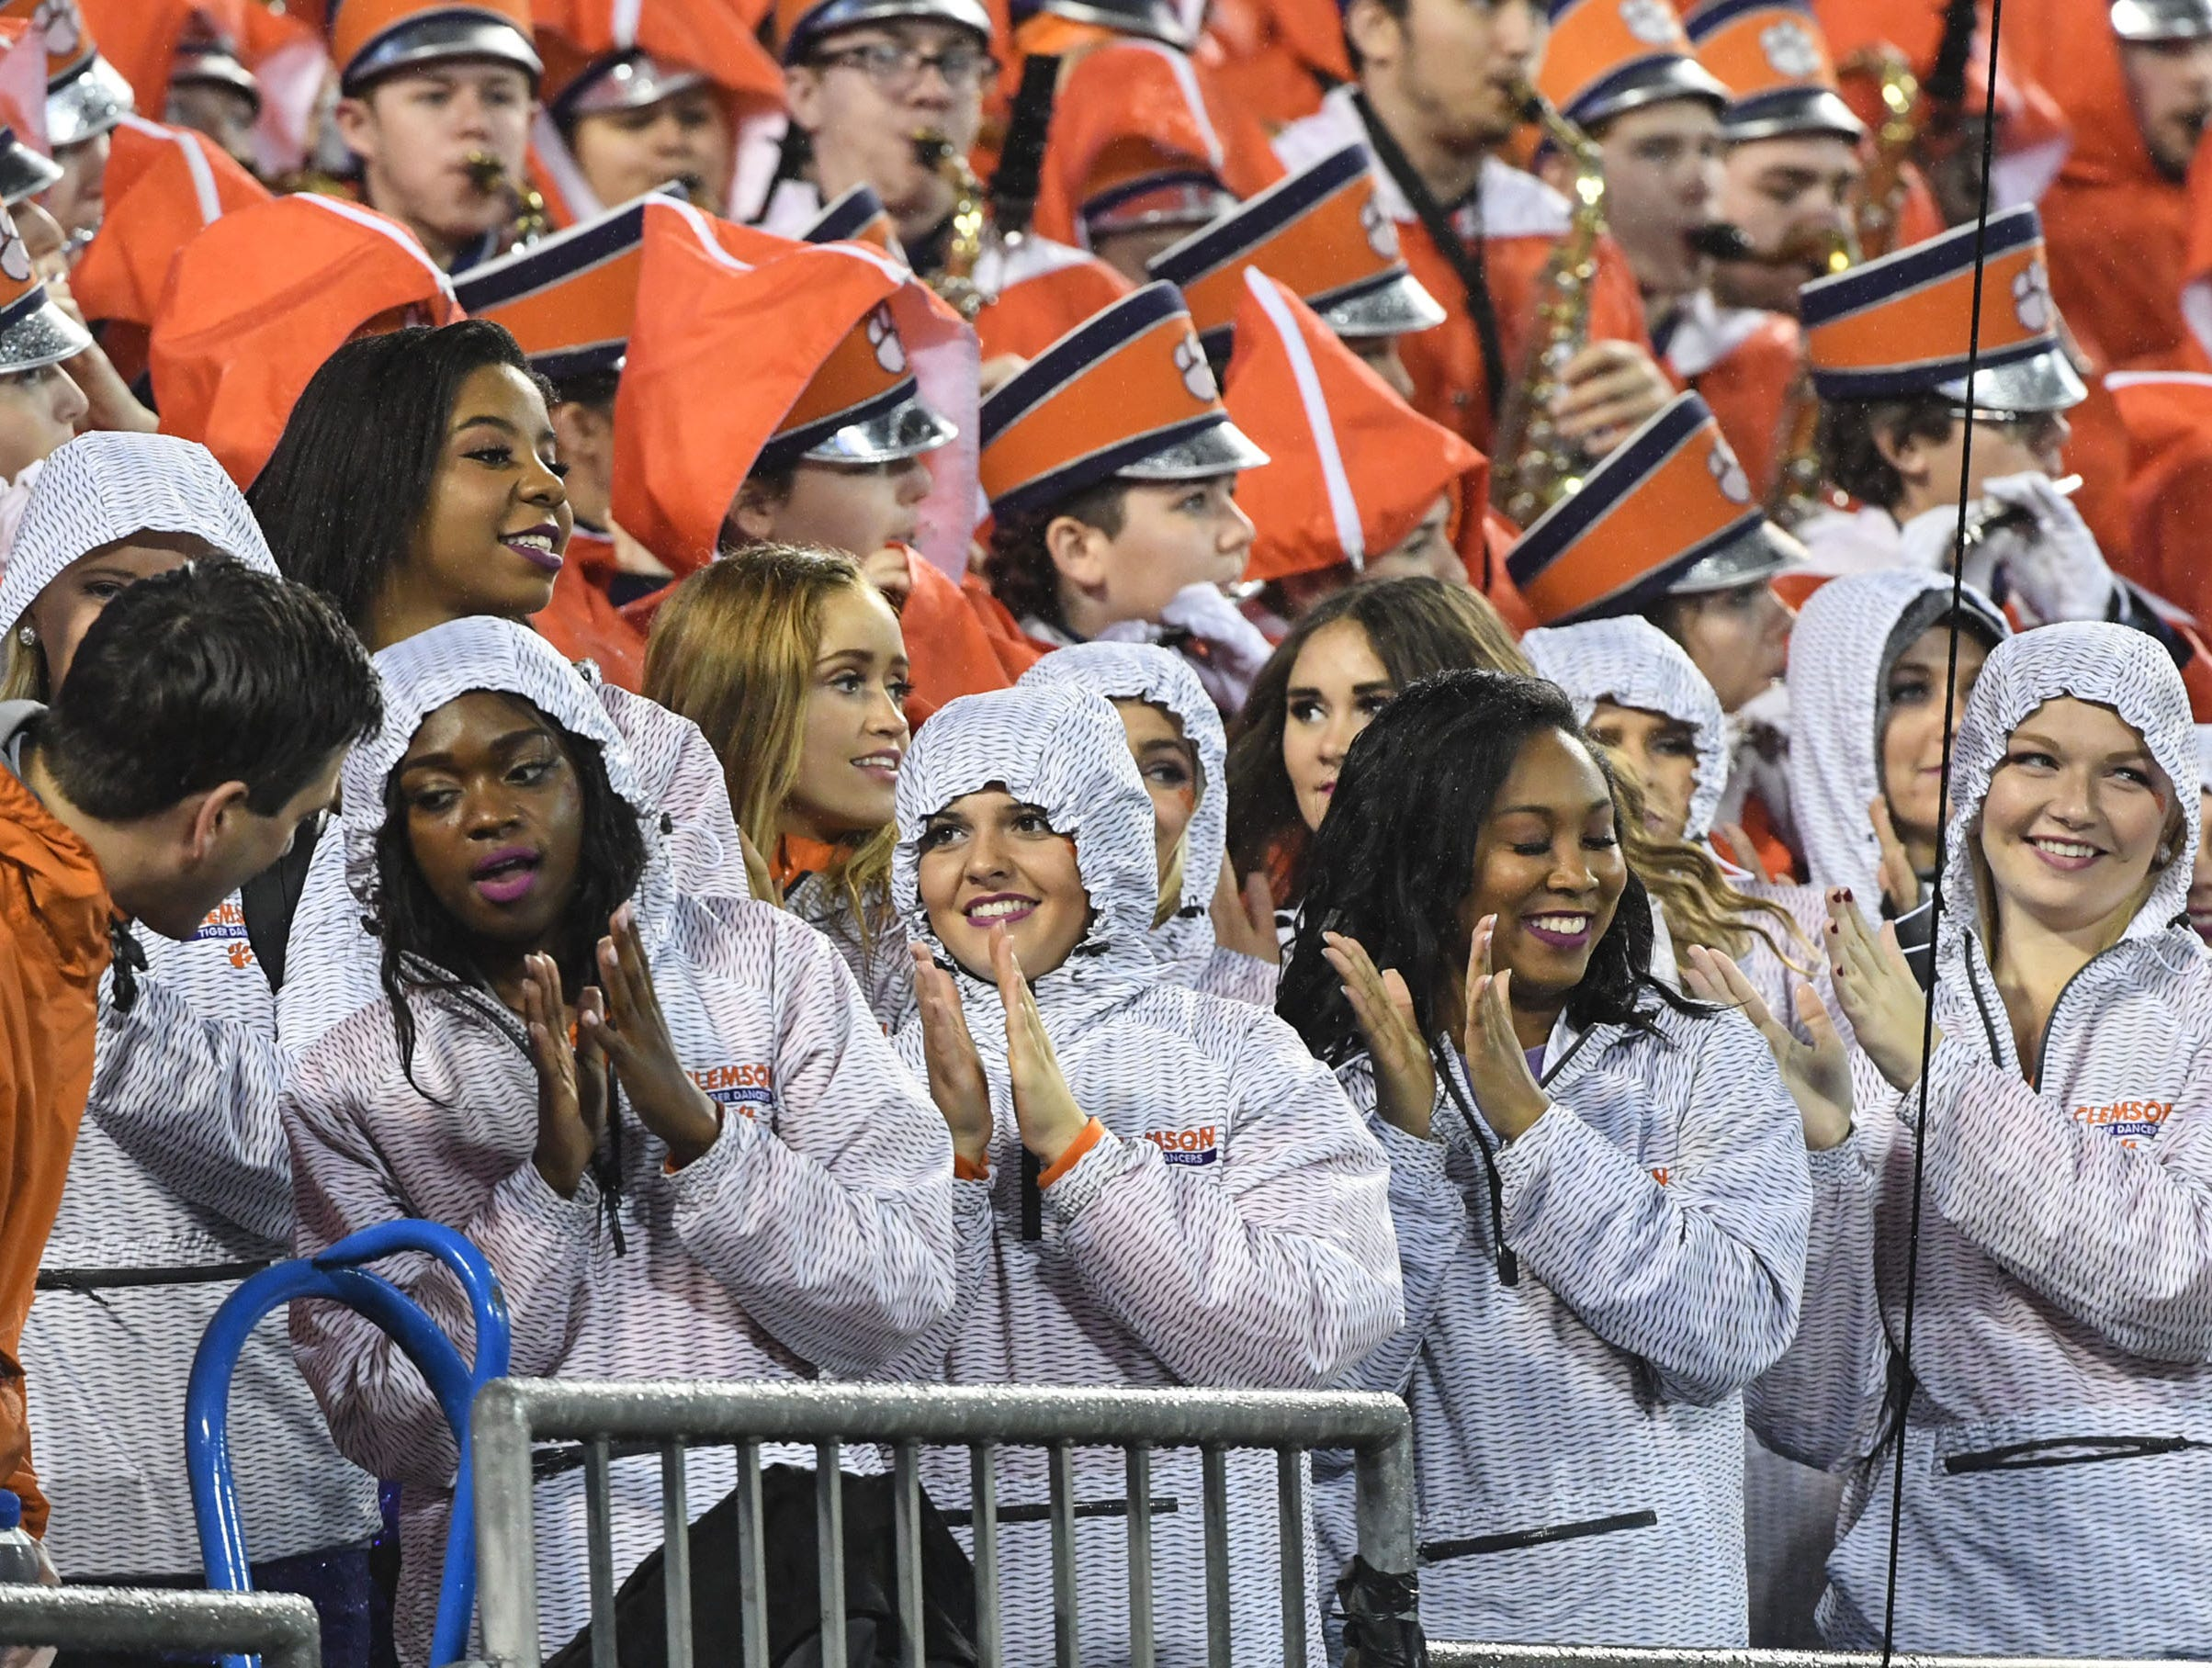 Clemson cheerleaders clap during the first quarter of the Dr. Pepper ACC football championship at Bank of America Stadium in Charlotte, N.C. on Saturday, December 1, 2018.